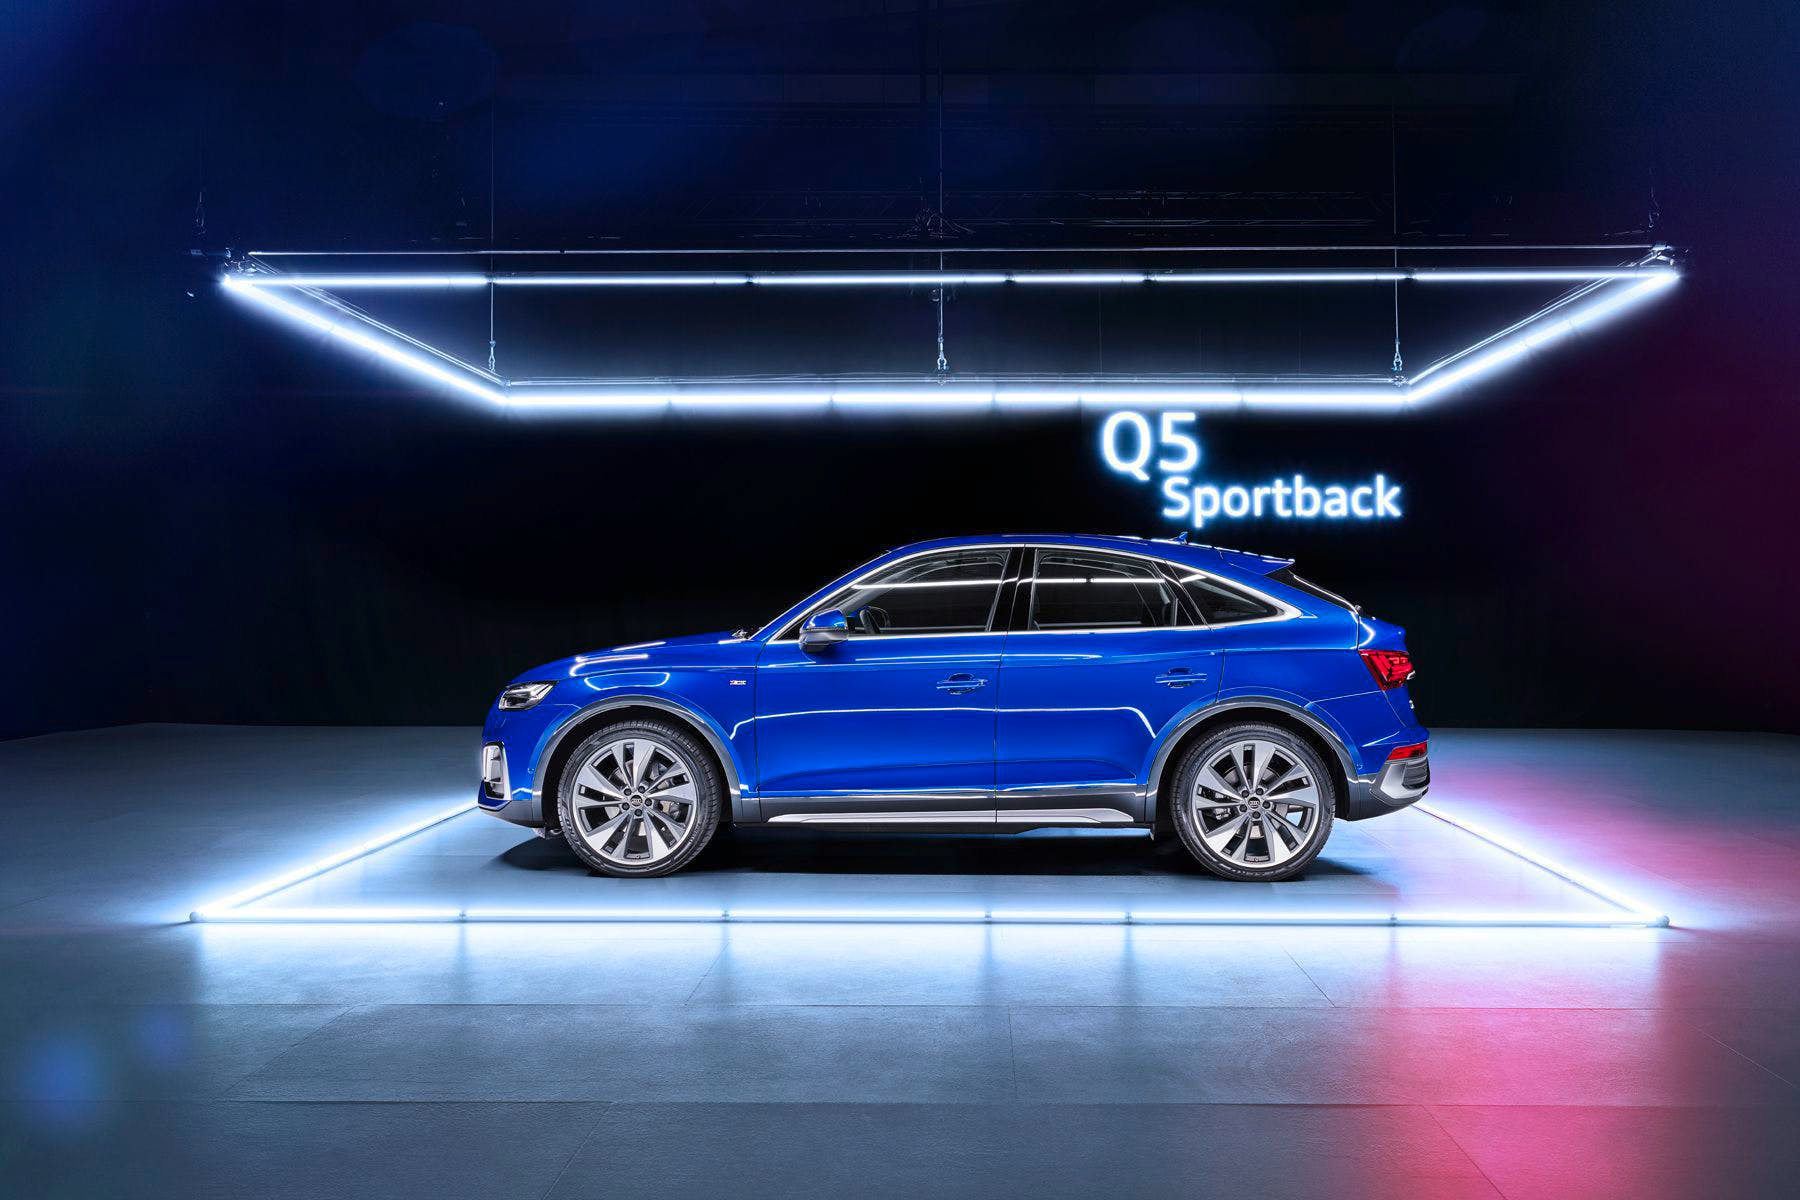 The Q5 Sportback will be available sometime during the first half of 2021. Audi / Handout